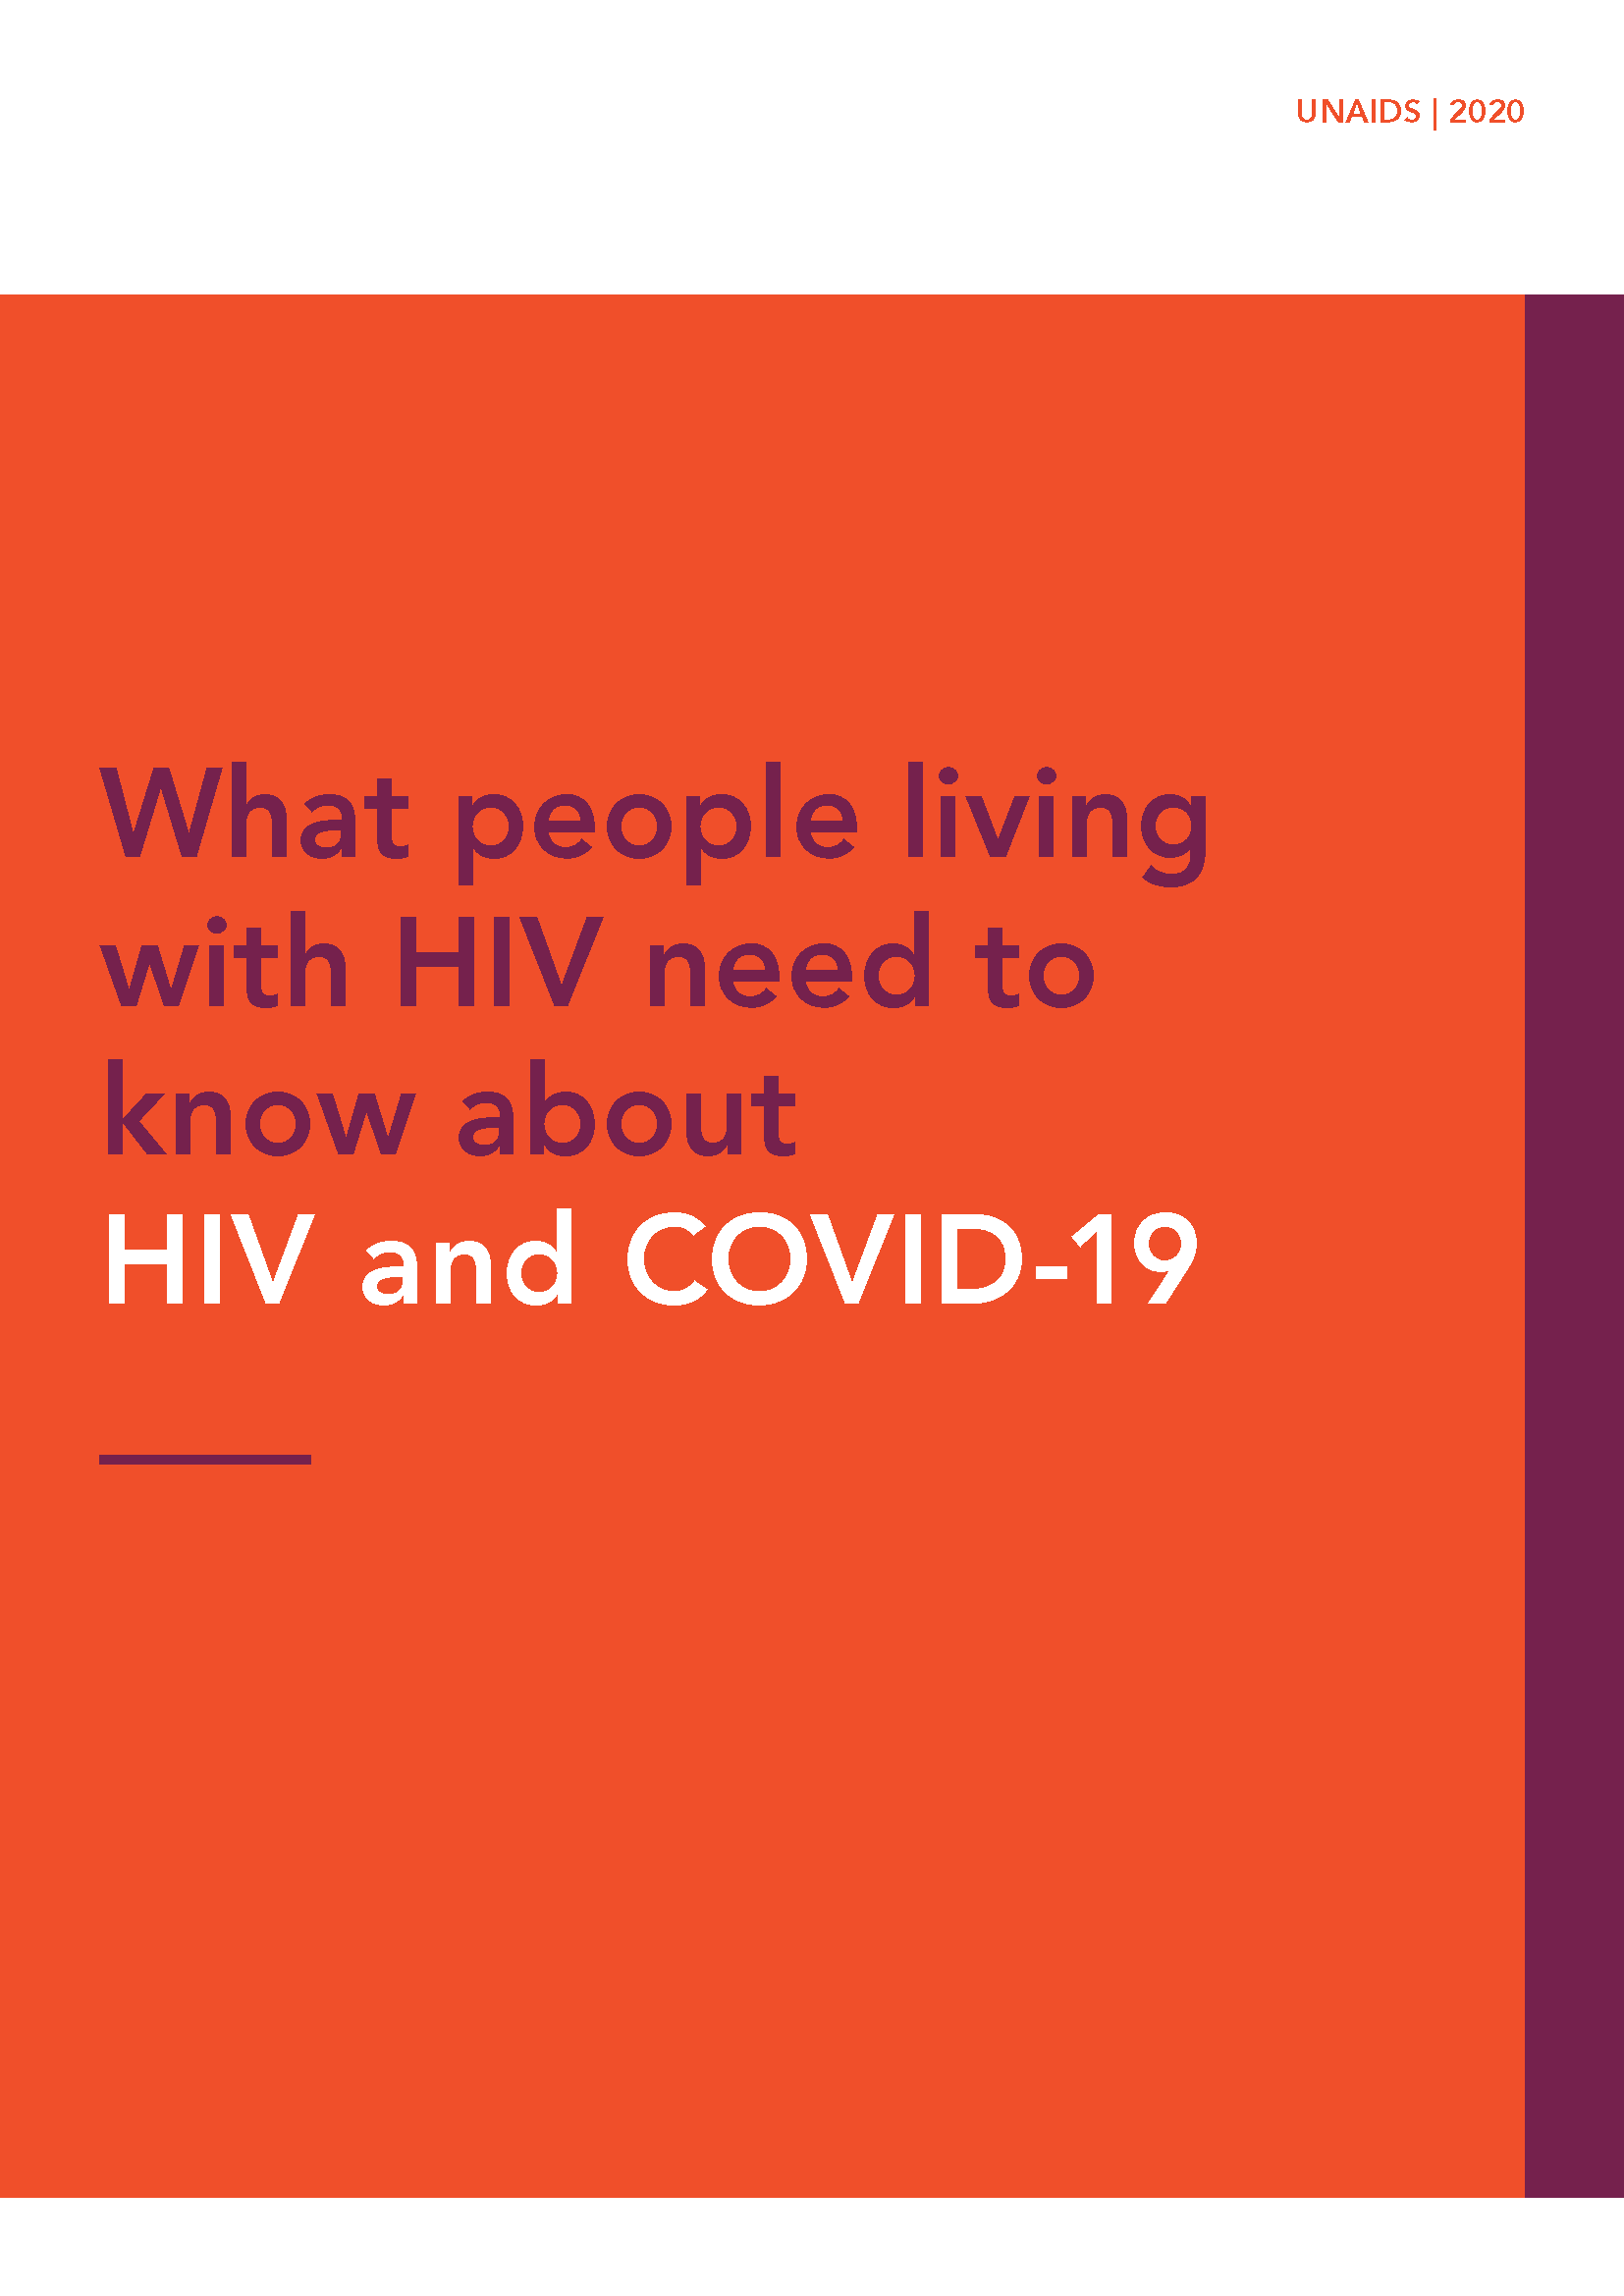 COVID-19 UNAIDS PLHIV Guidance_Brochure_